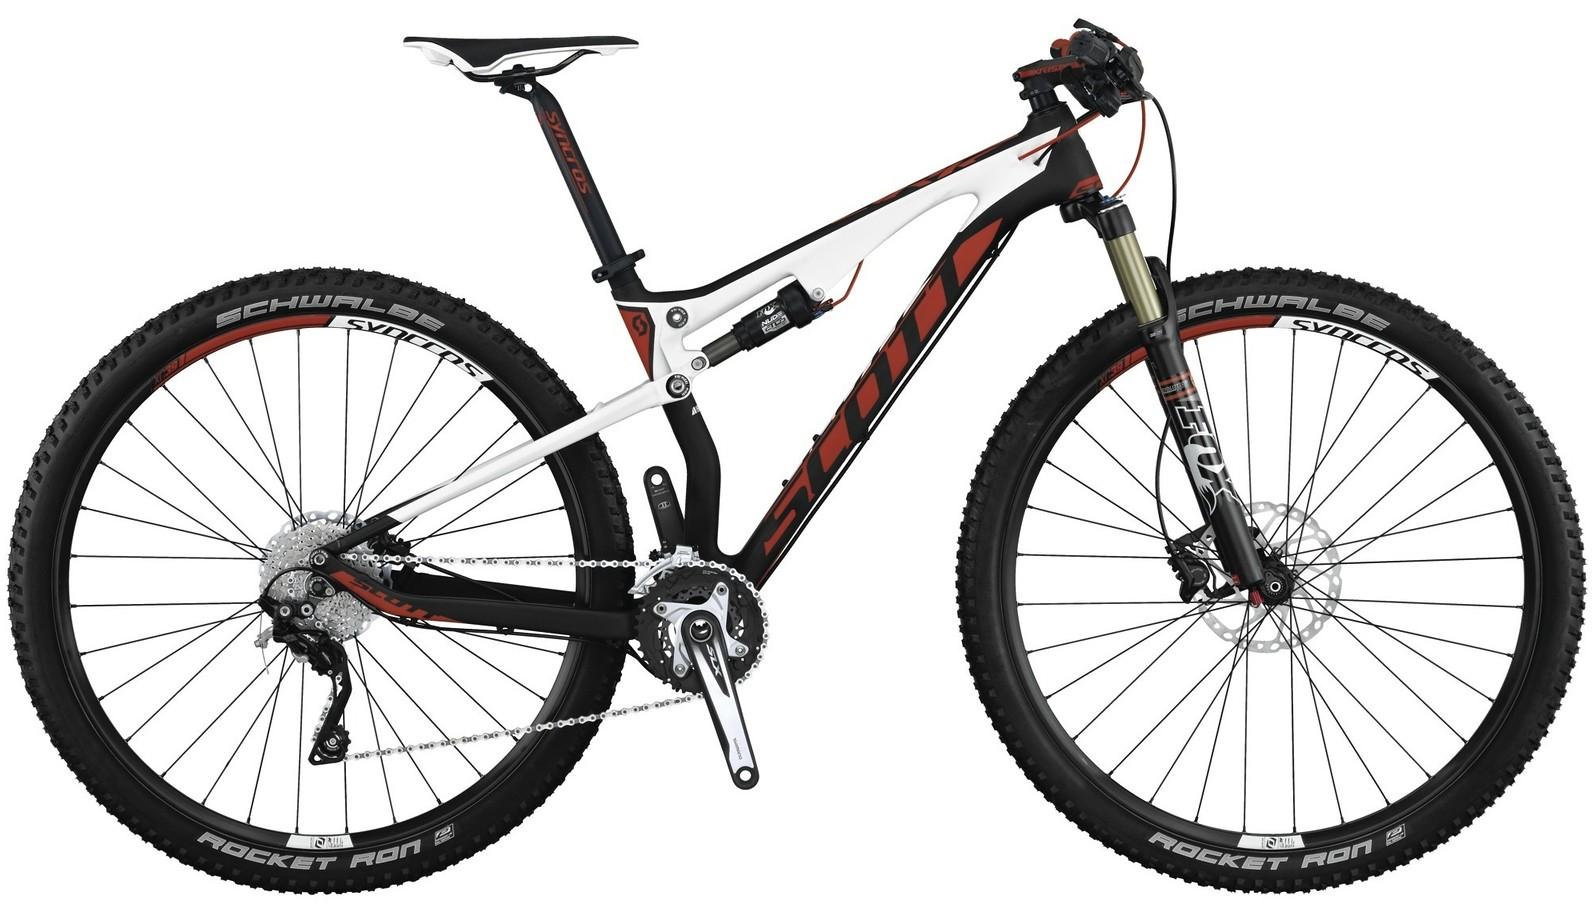 2015 Scott Spark 930 Bike Reviews Comparisons Specs